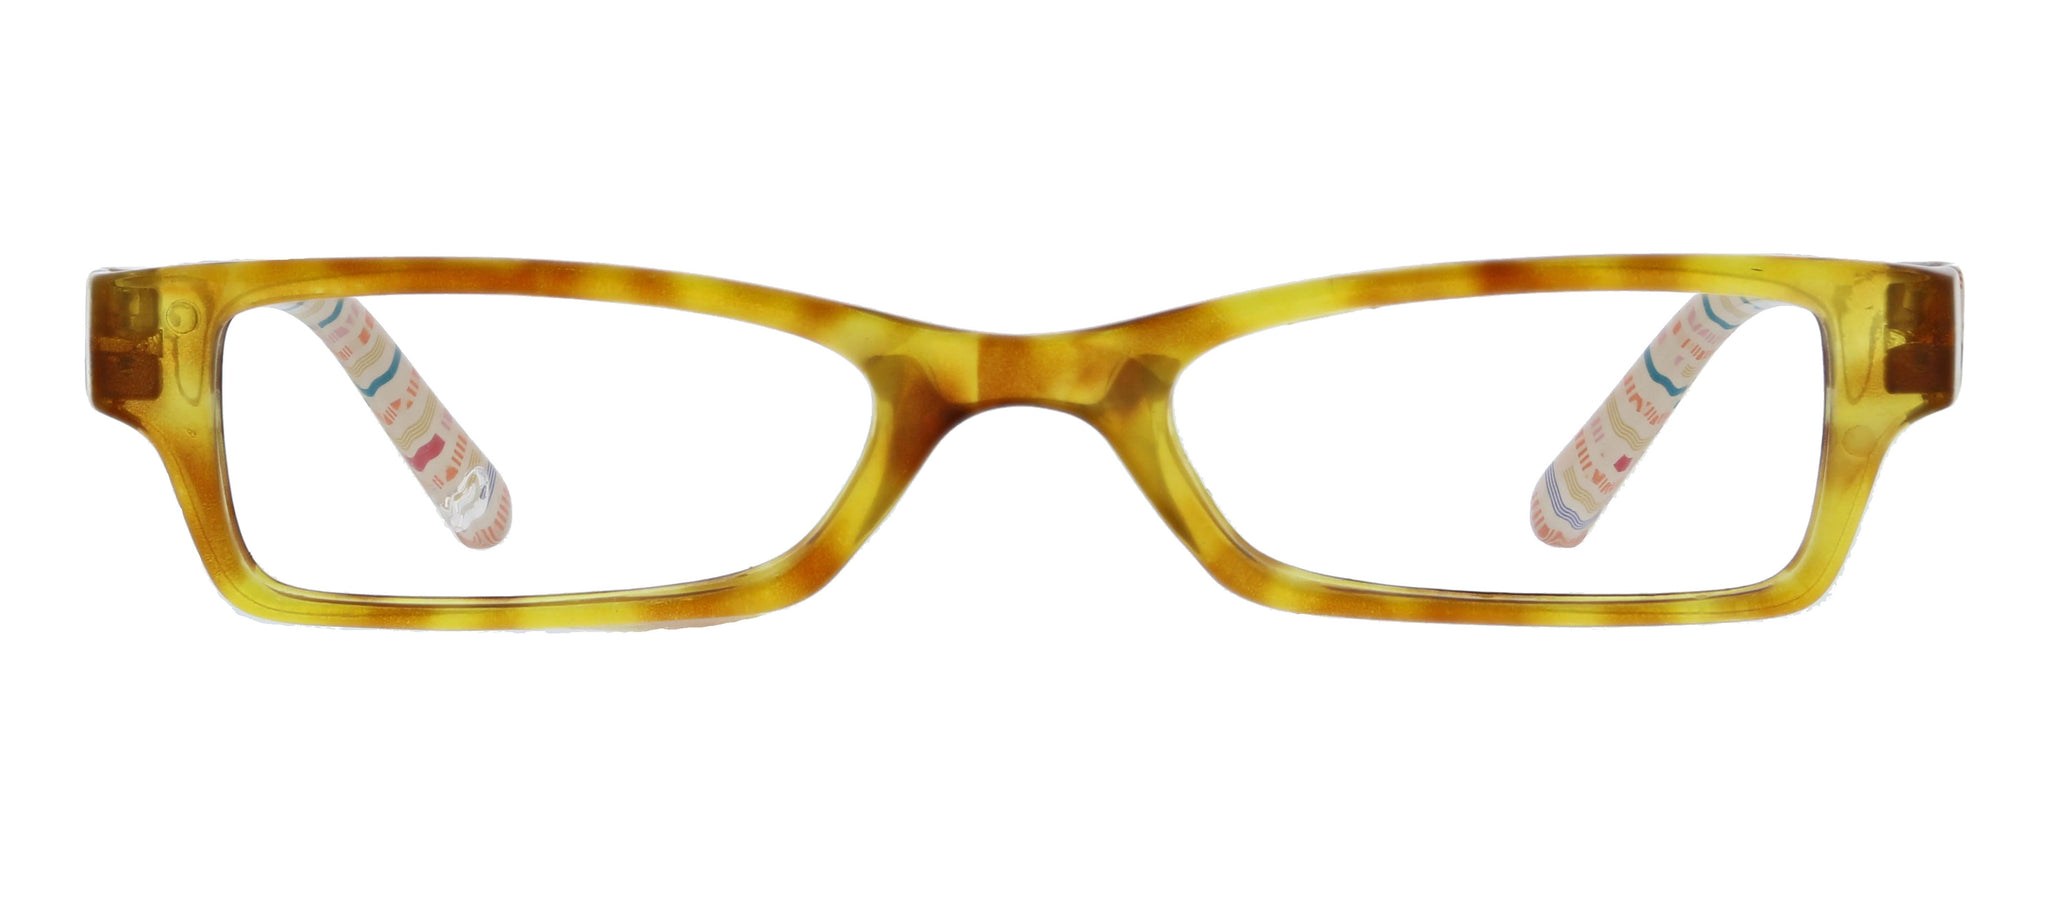 Copenhagen Peepers blue light reading glasses